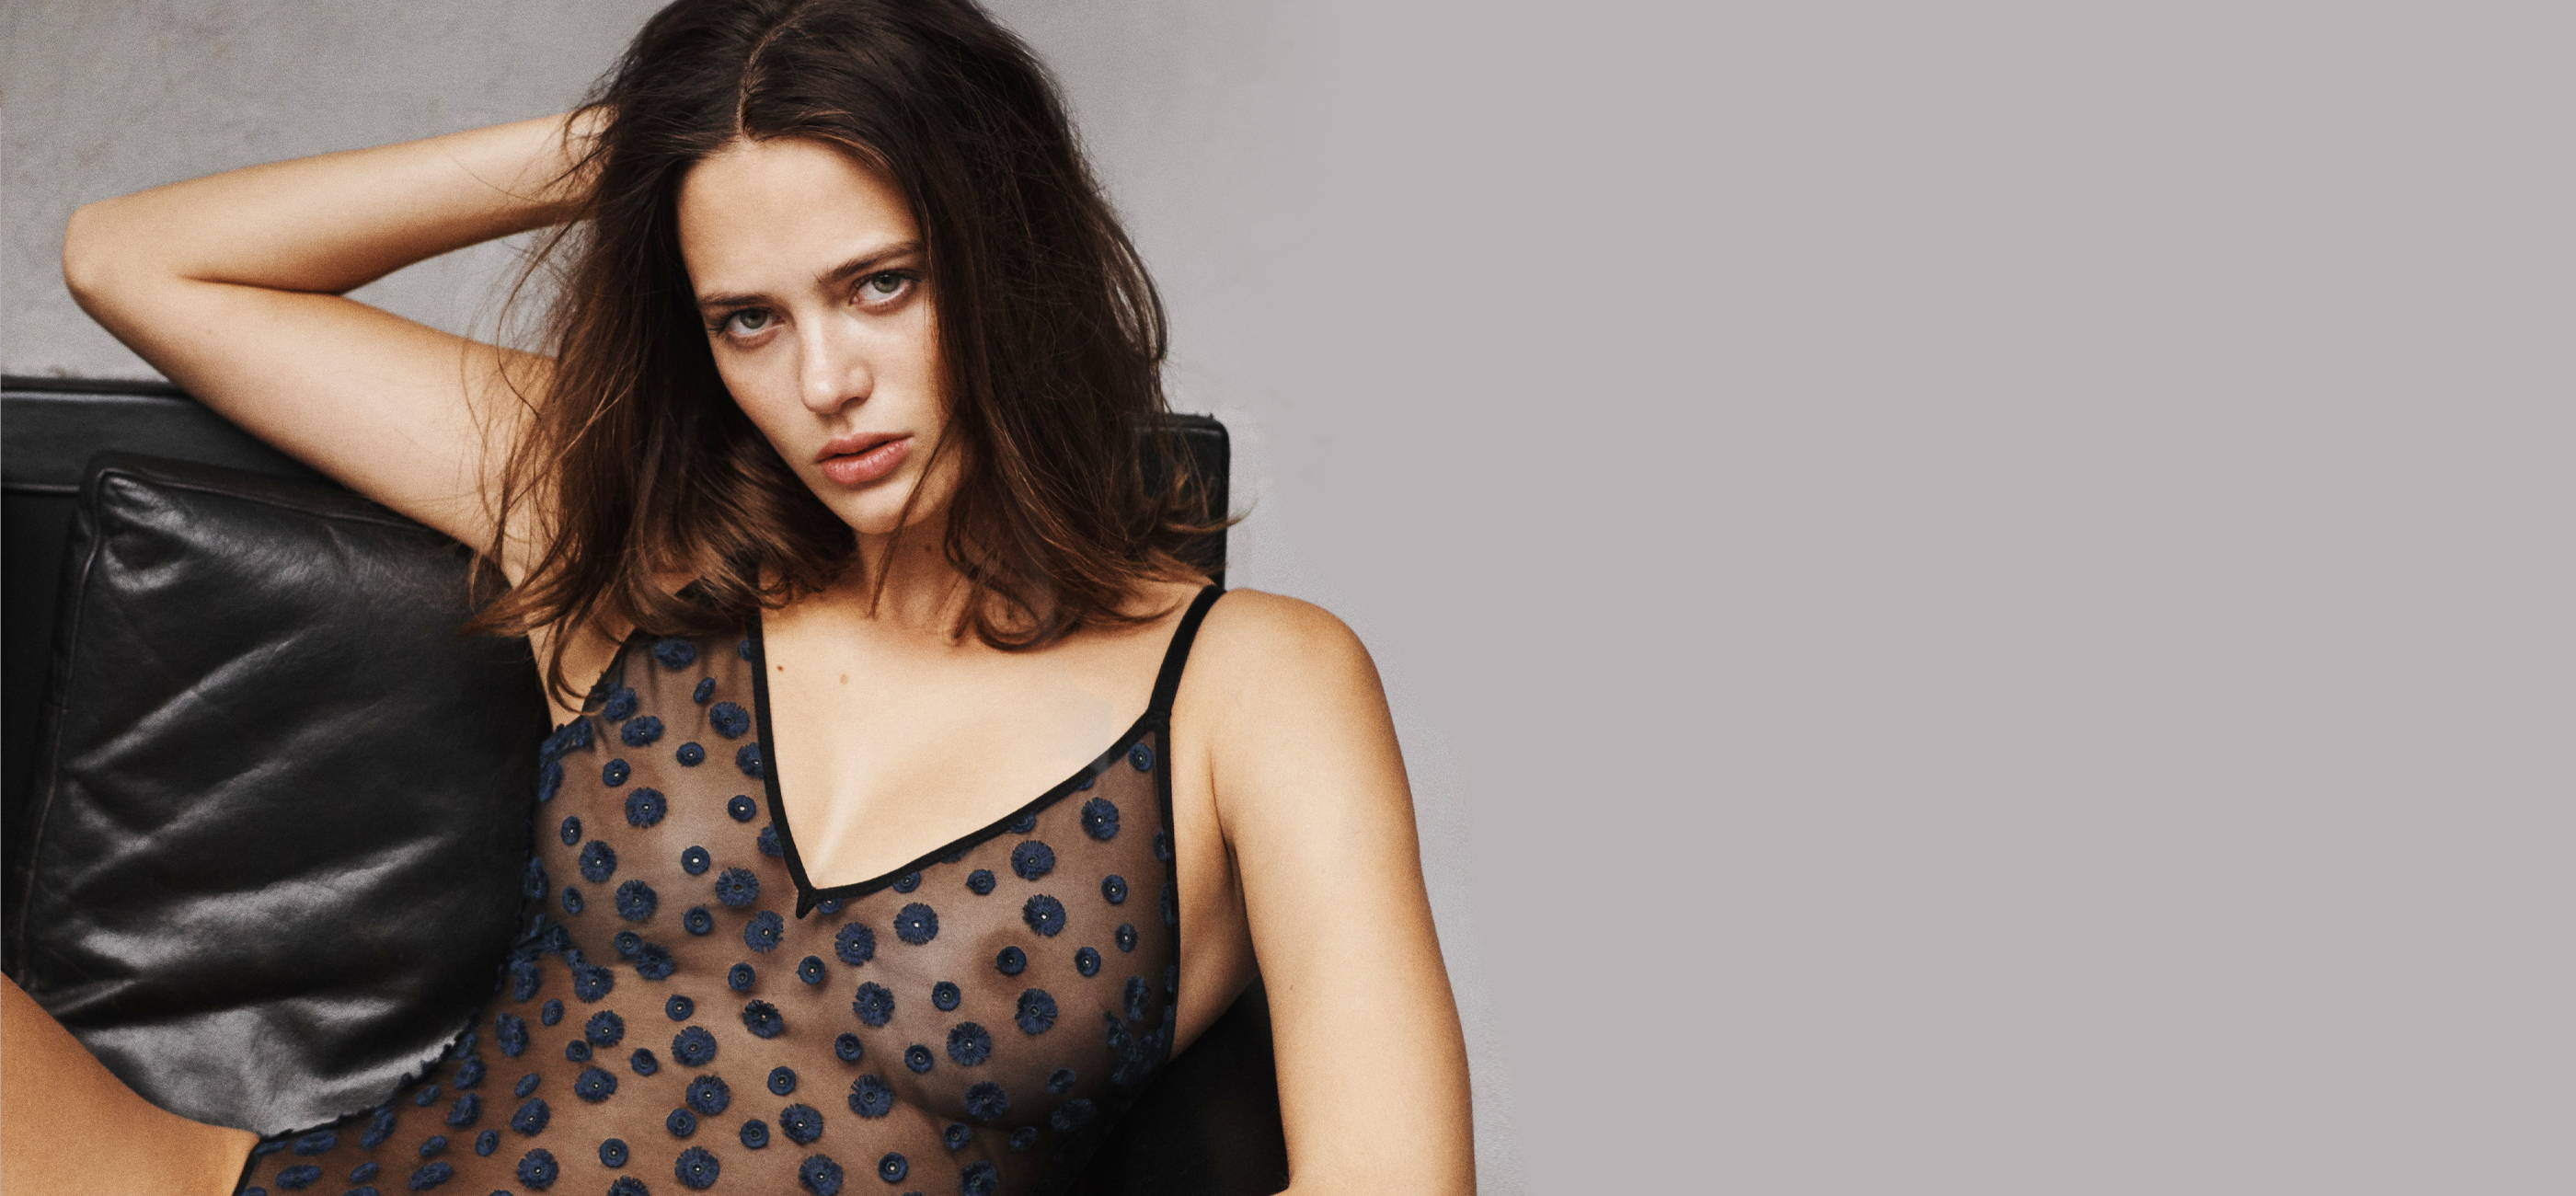 Woman wearing the Simone Perele Lingerie Cassie Bodysuit featuring intricate embroidered details and comfortable mesh material